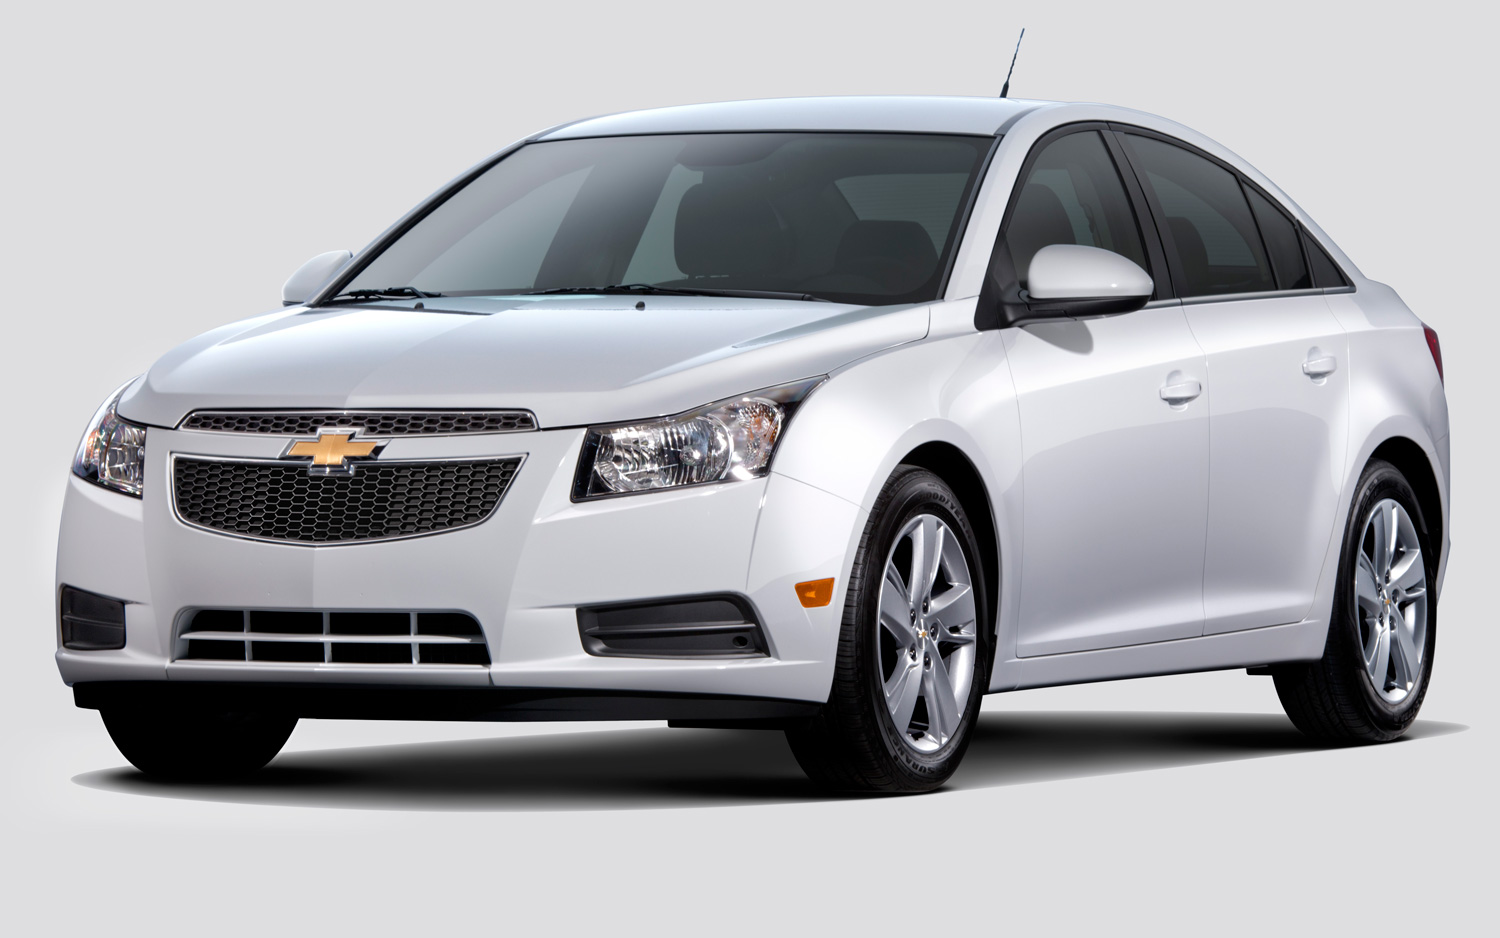 2014 chevrolet cruze 2 0td new cars reviews. Black Bedroom Furniture Sets. Home Design Ideas